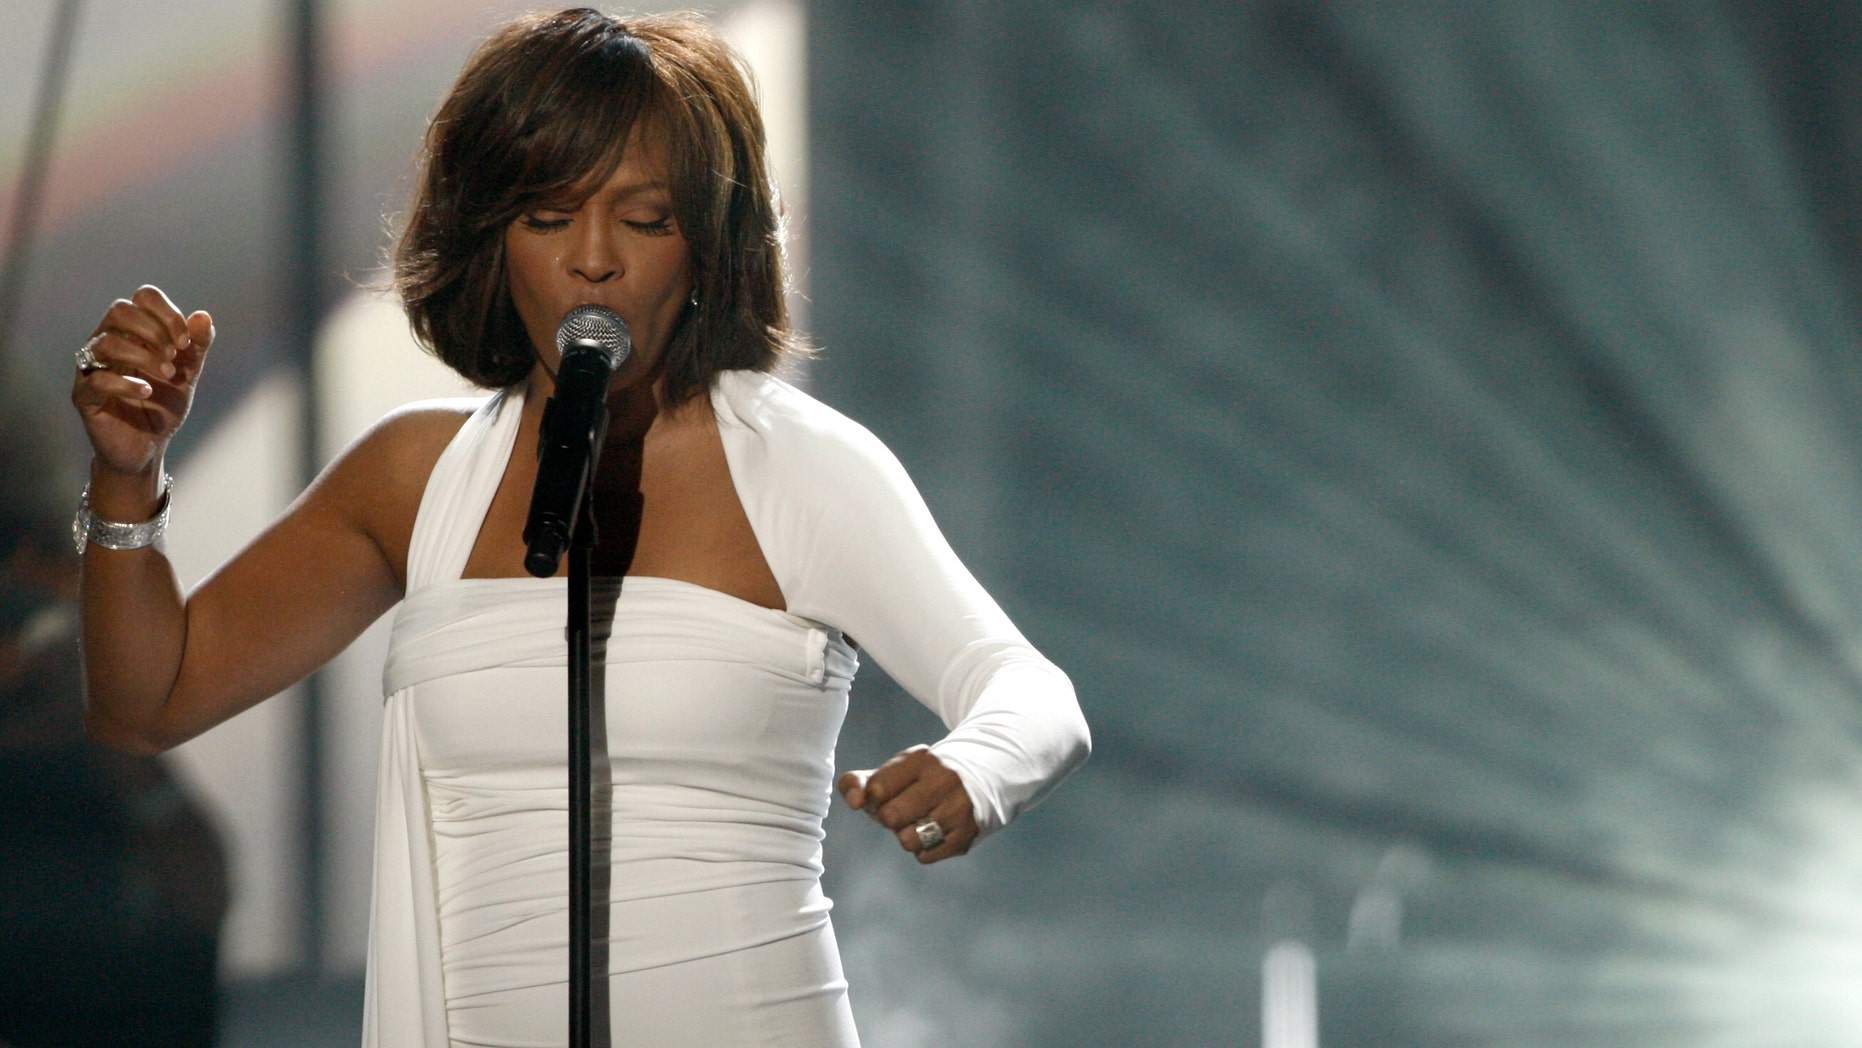 In this Nov. 22, 2009, file photo, Whitney Houston performs at the 37th Annual American Music Awards in Los Angeles. Houston died Saturday, Feb. 11, 2012, she was 48. (AP Photo/Matt Sayles)